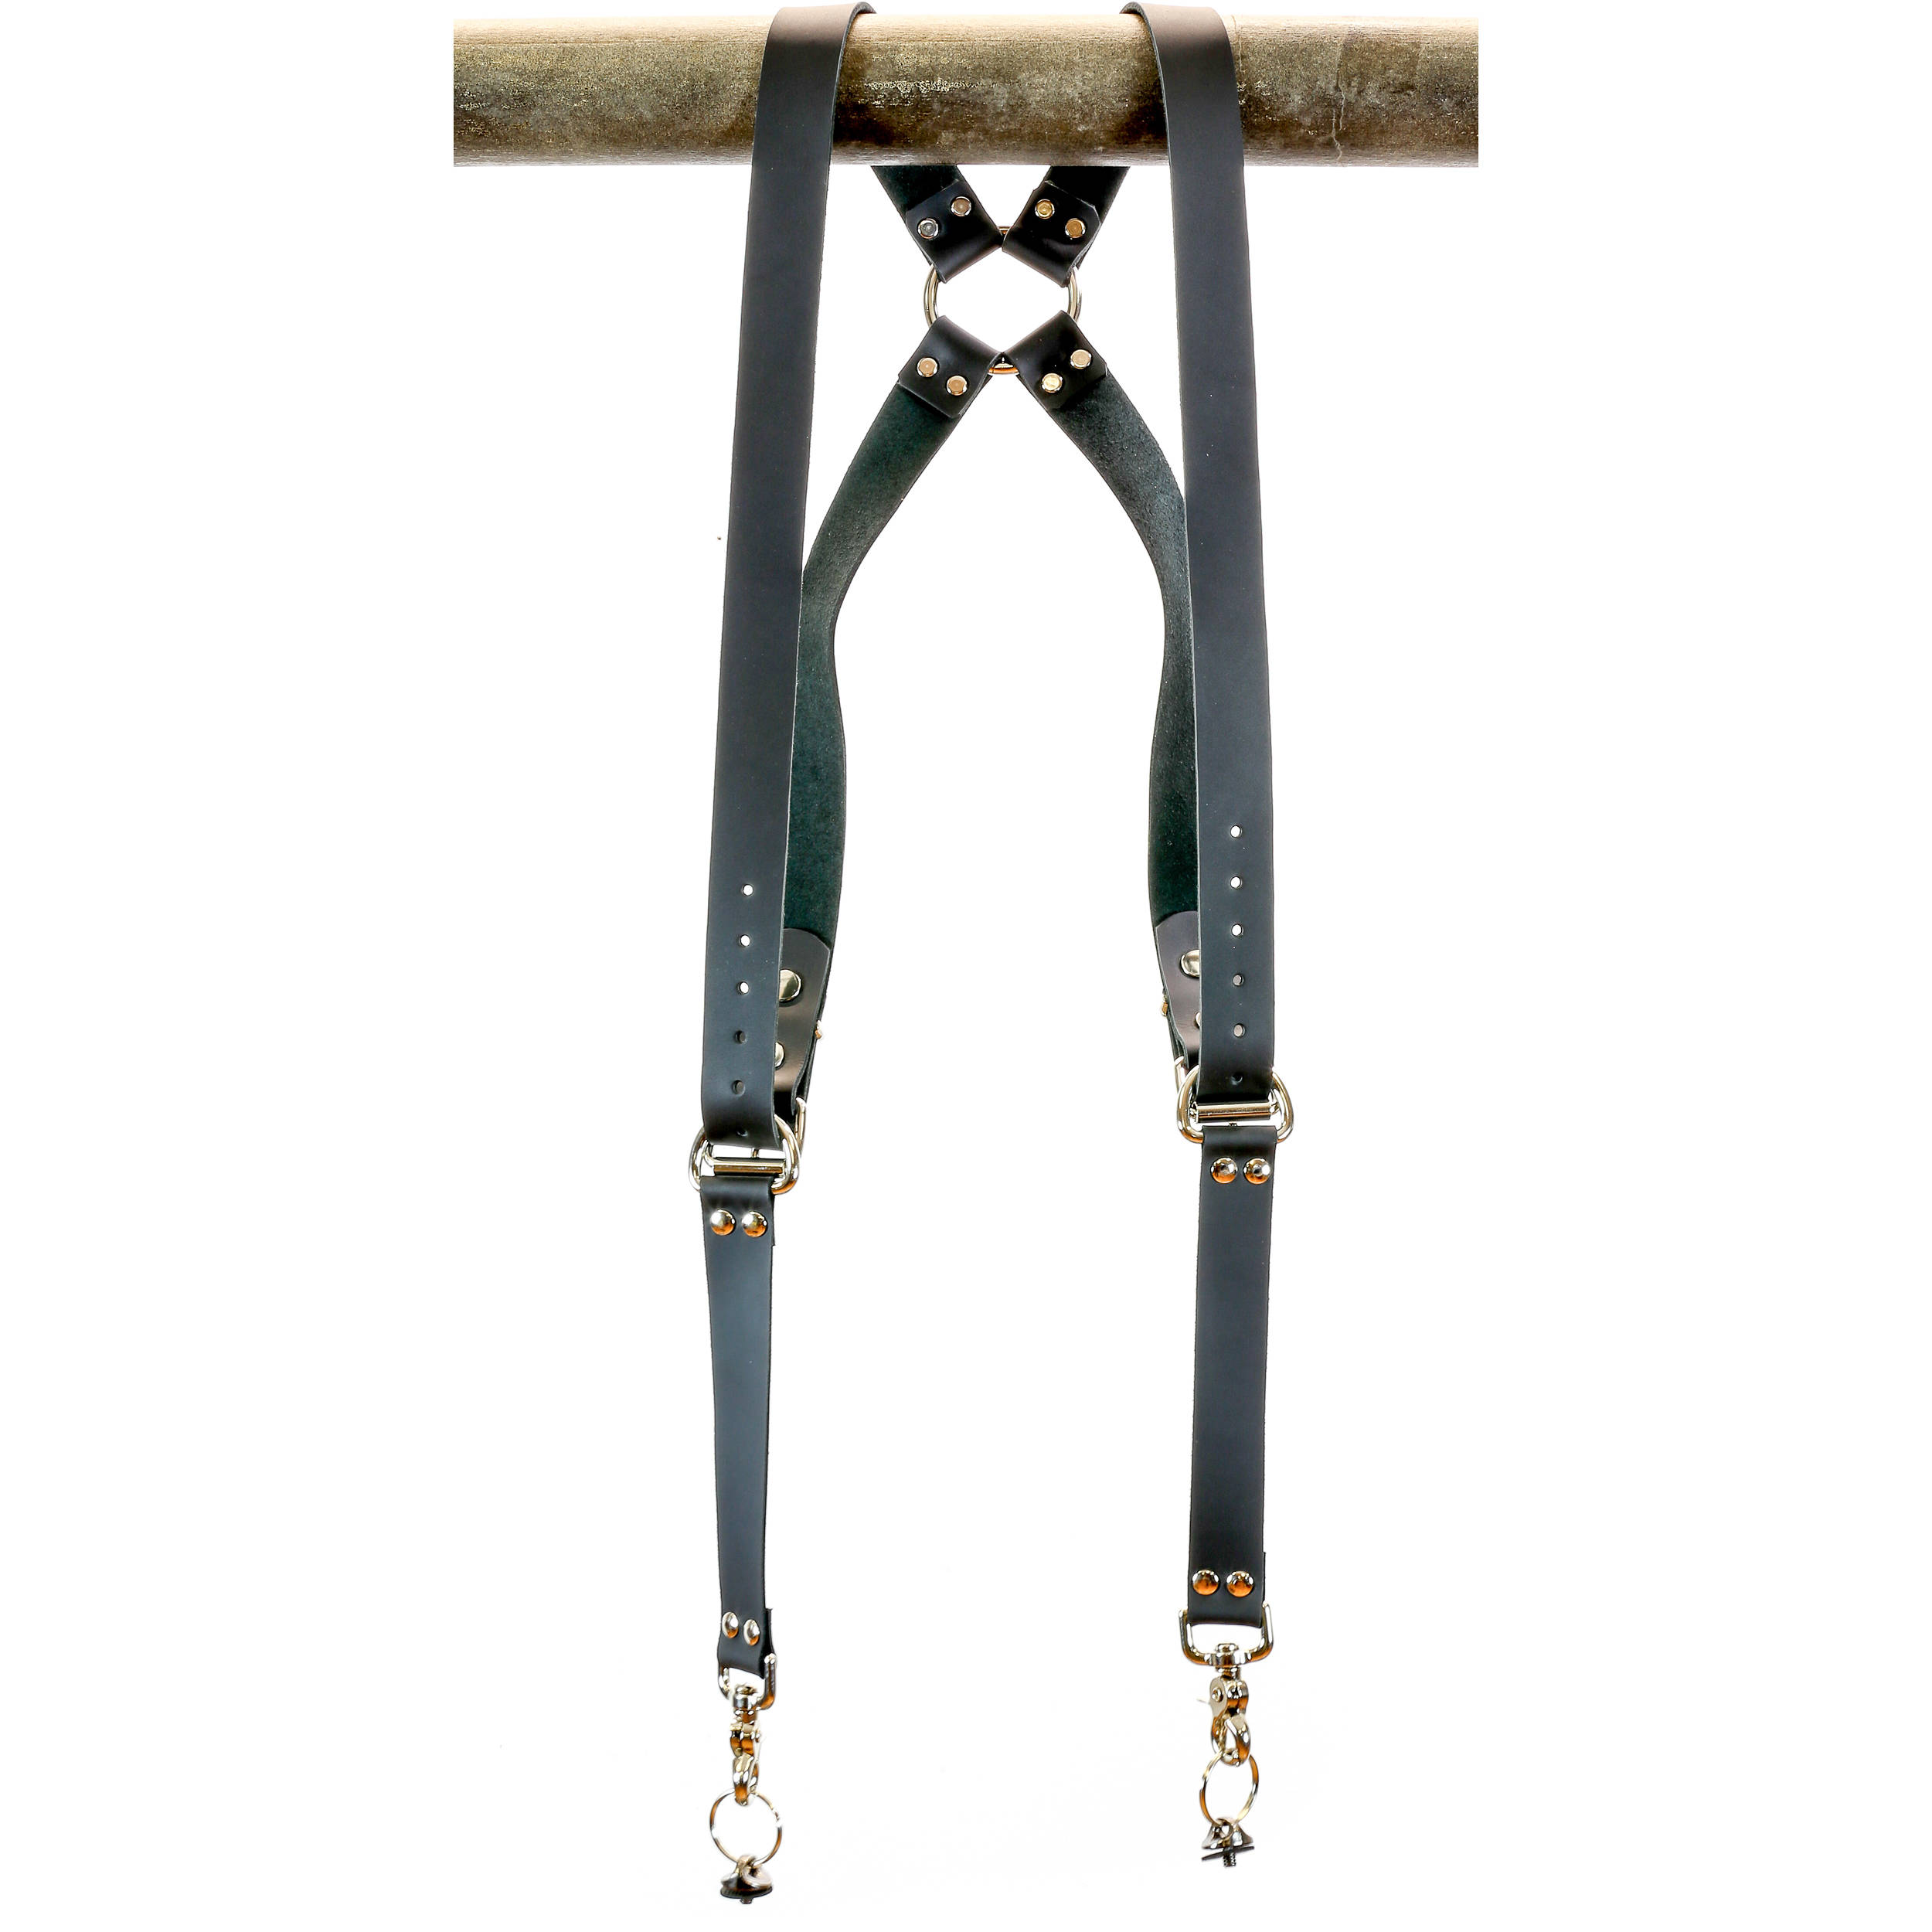 Funk Plus Classy Ring Back Dual Camera Leather Harness 1.25 Wide Black Cowhide